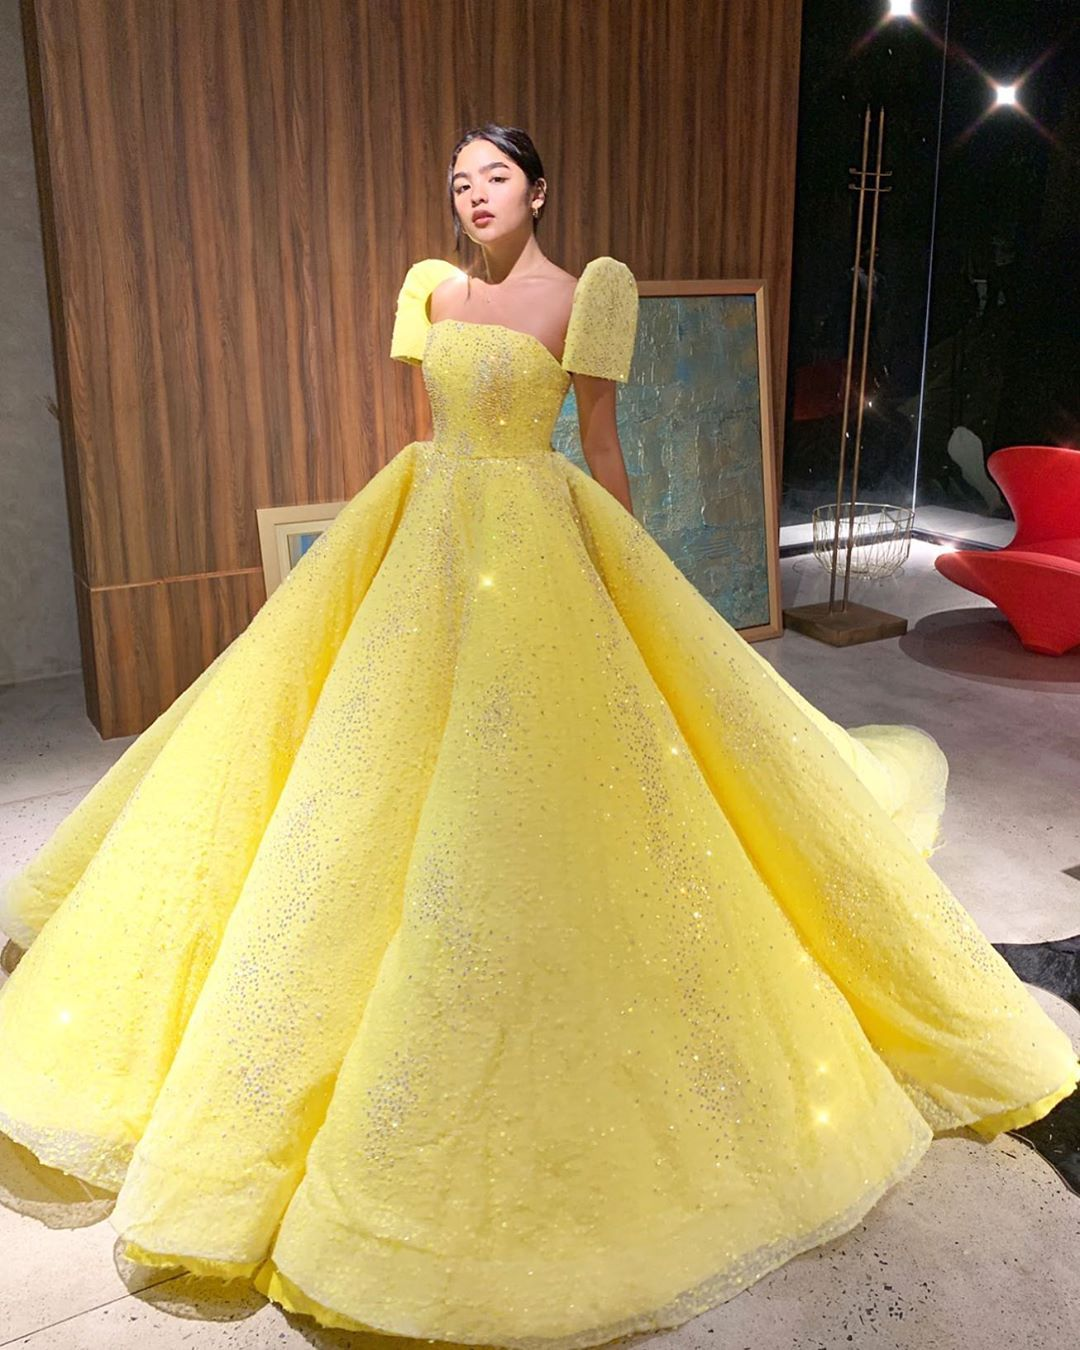 Michael Leyva On Instagram Belle Of The Ball Blythe In Michaelleyva For 2nd Outfit For Abscbnball20 Short Sleeve Prom Dresses Gowns Ball Gowns Prom